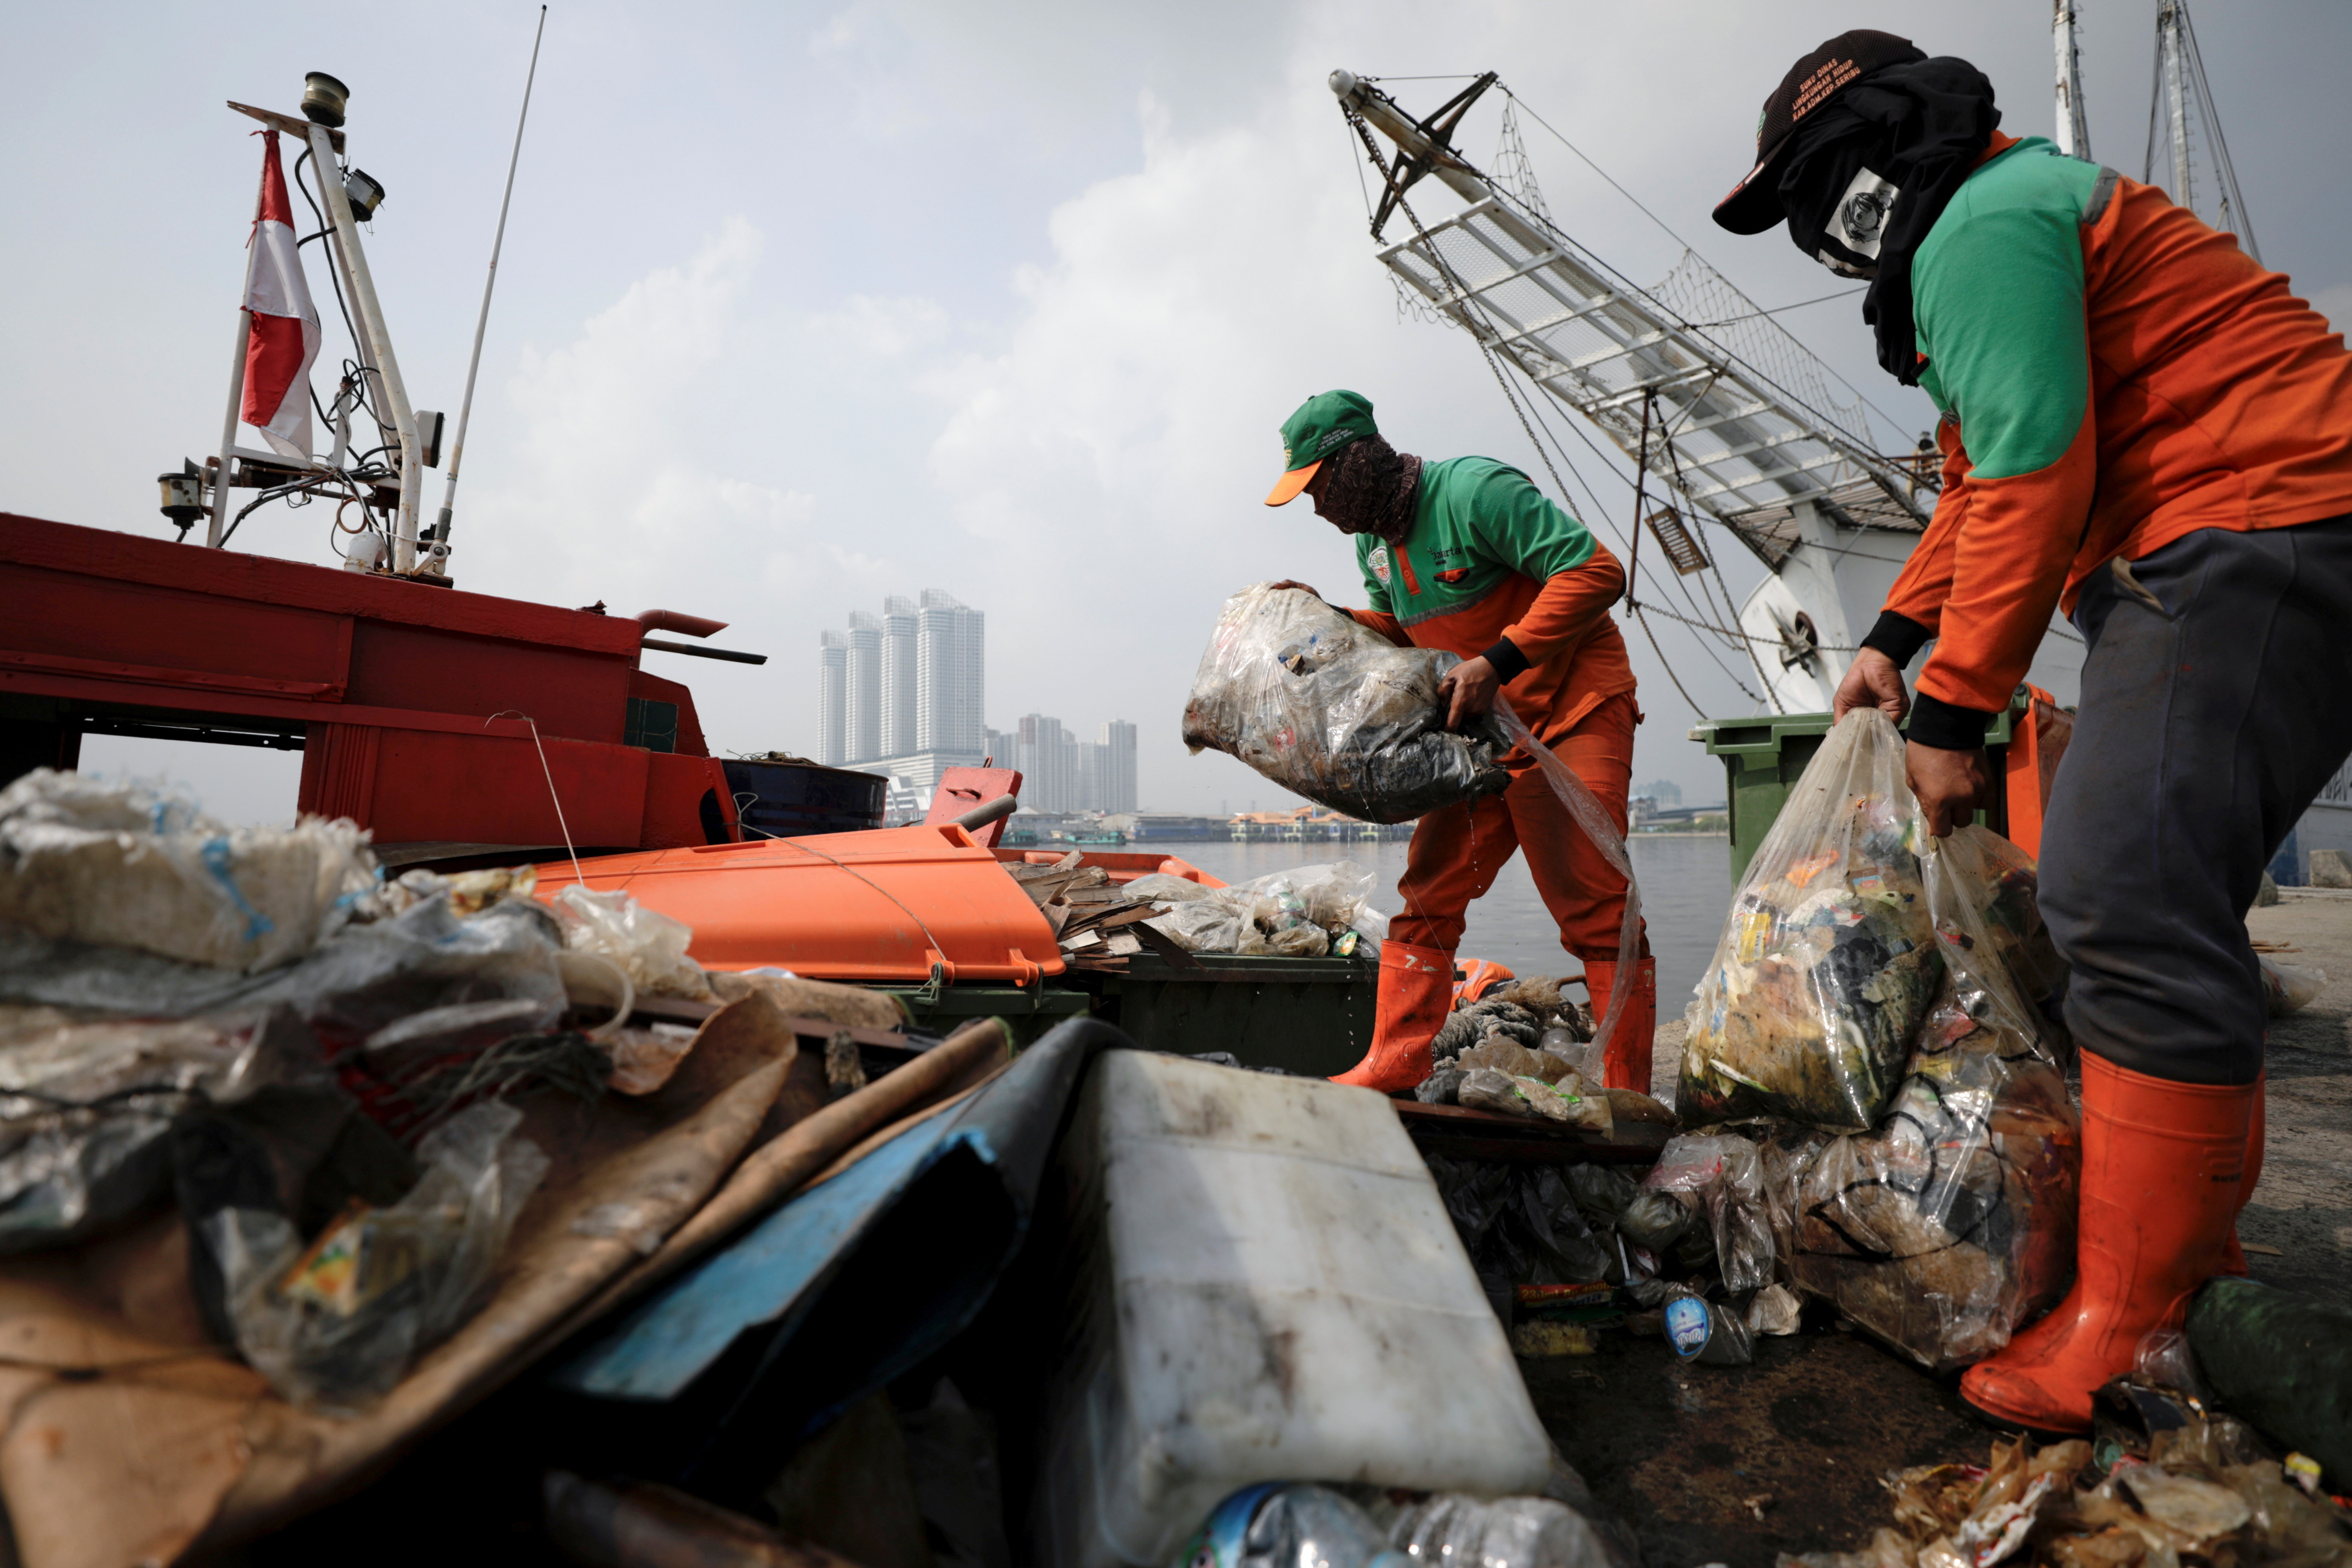 Municipality workers unload bags of garbage collected from the shore, most of it plastics and domestic waste, during World Oceans Day, at Kali Adem Port in Jakarta, Indonesia, June 8, 2021.